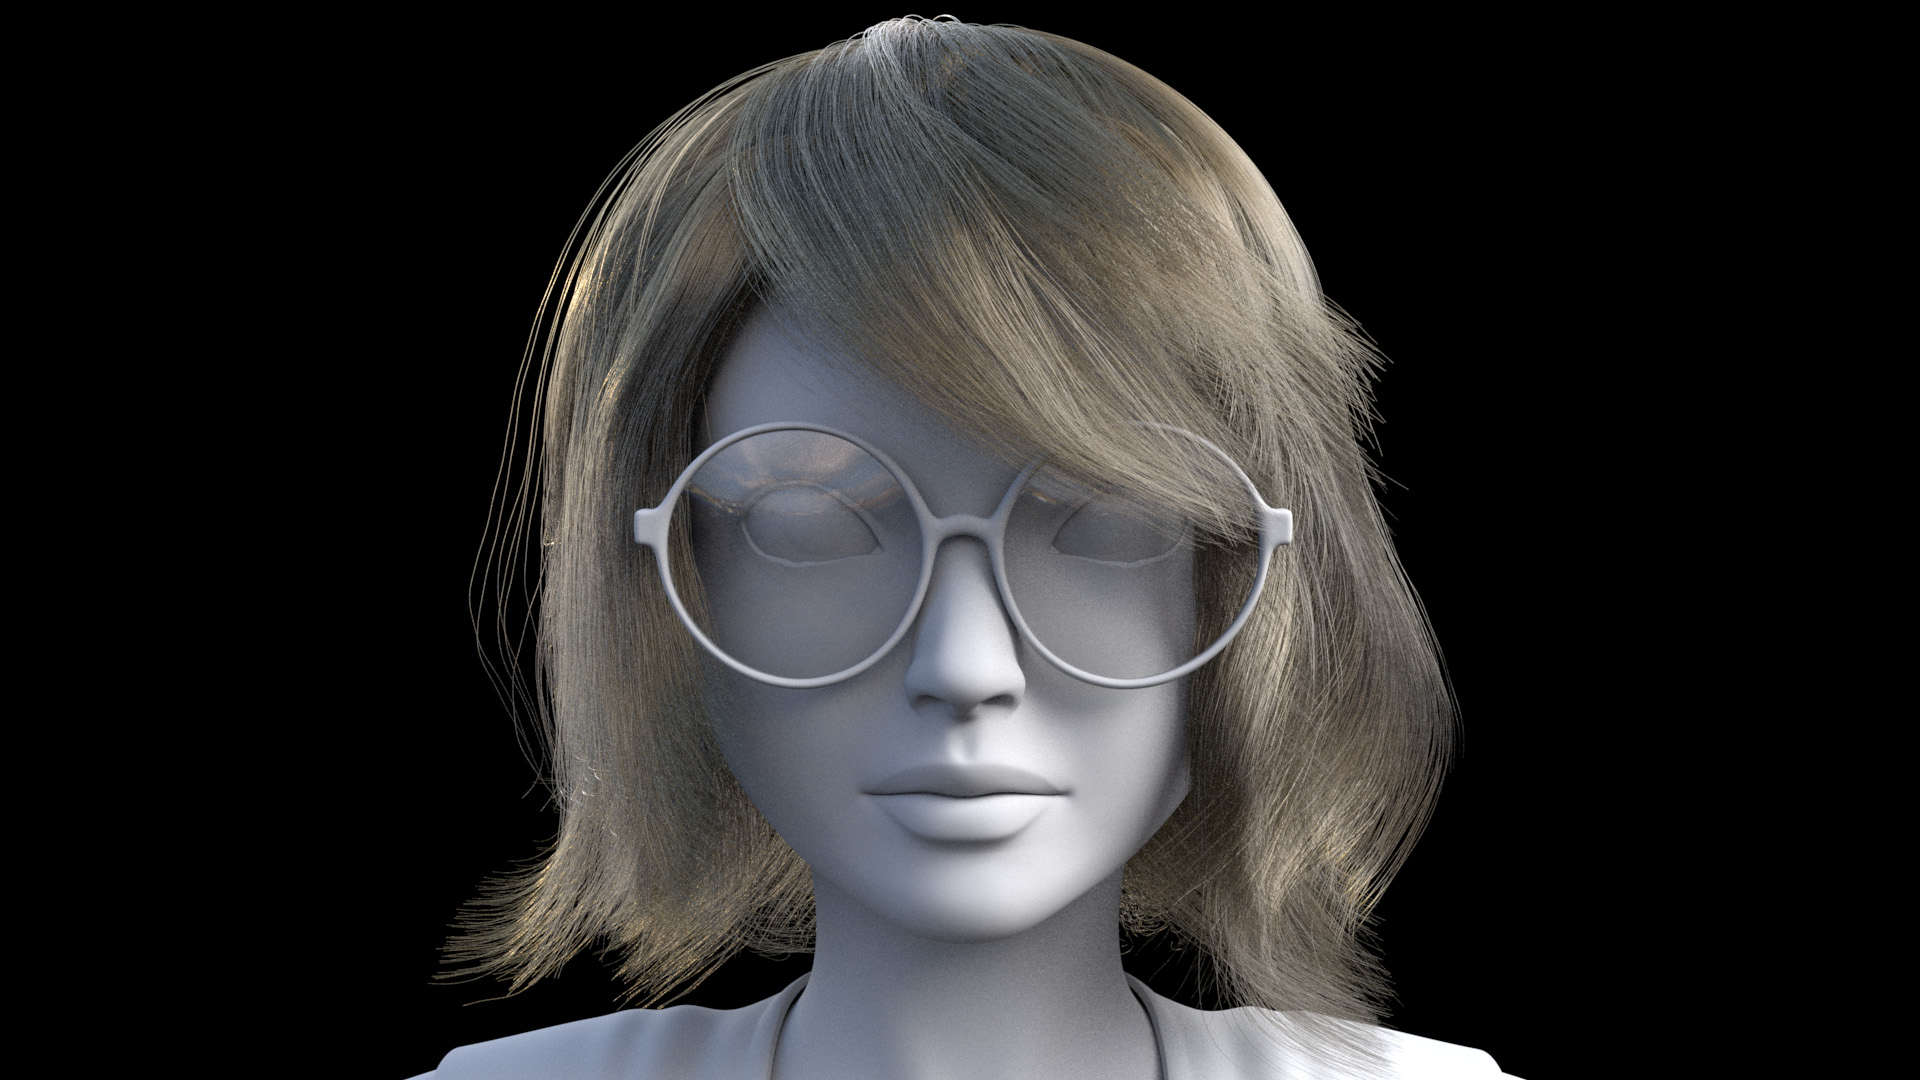 Figure 2: Early iteration of a custom hair groom for the character, with placeholder glasses.